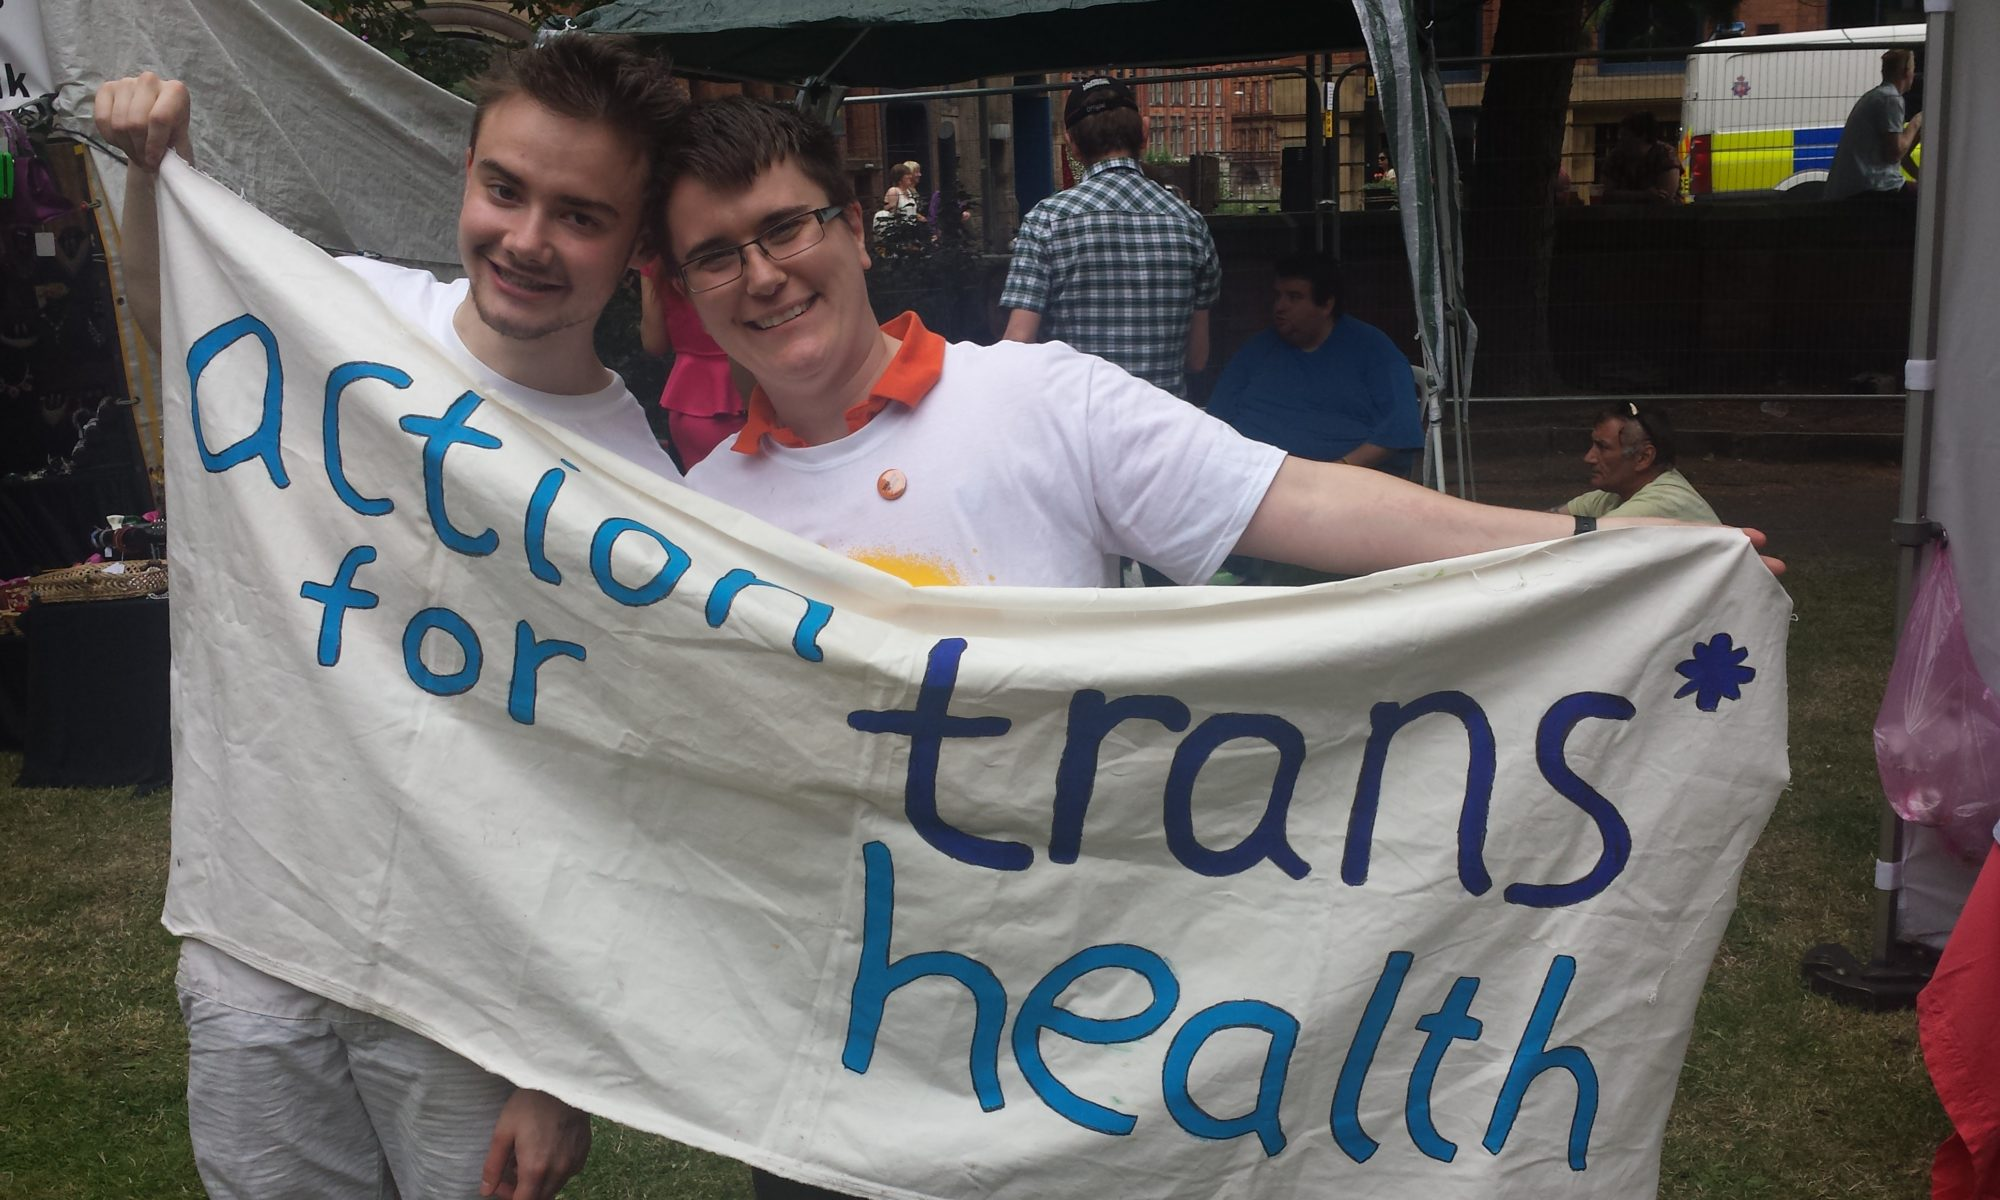 Two men in white t-shirts smiling while they hold an action for trans* health banner for the camera at an event in a park.